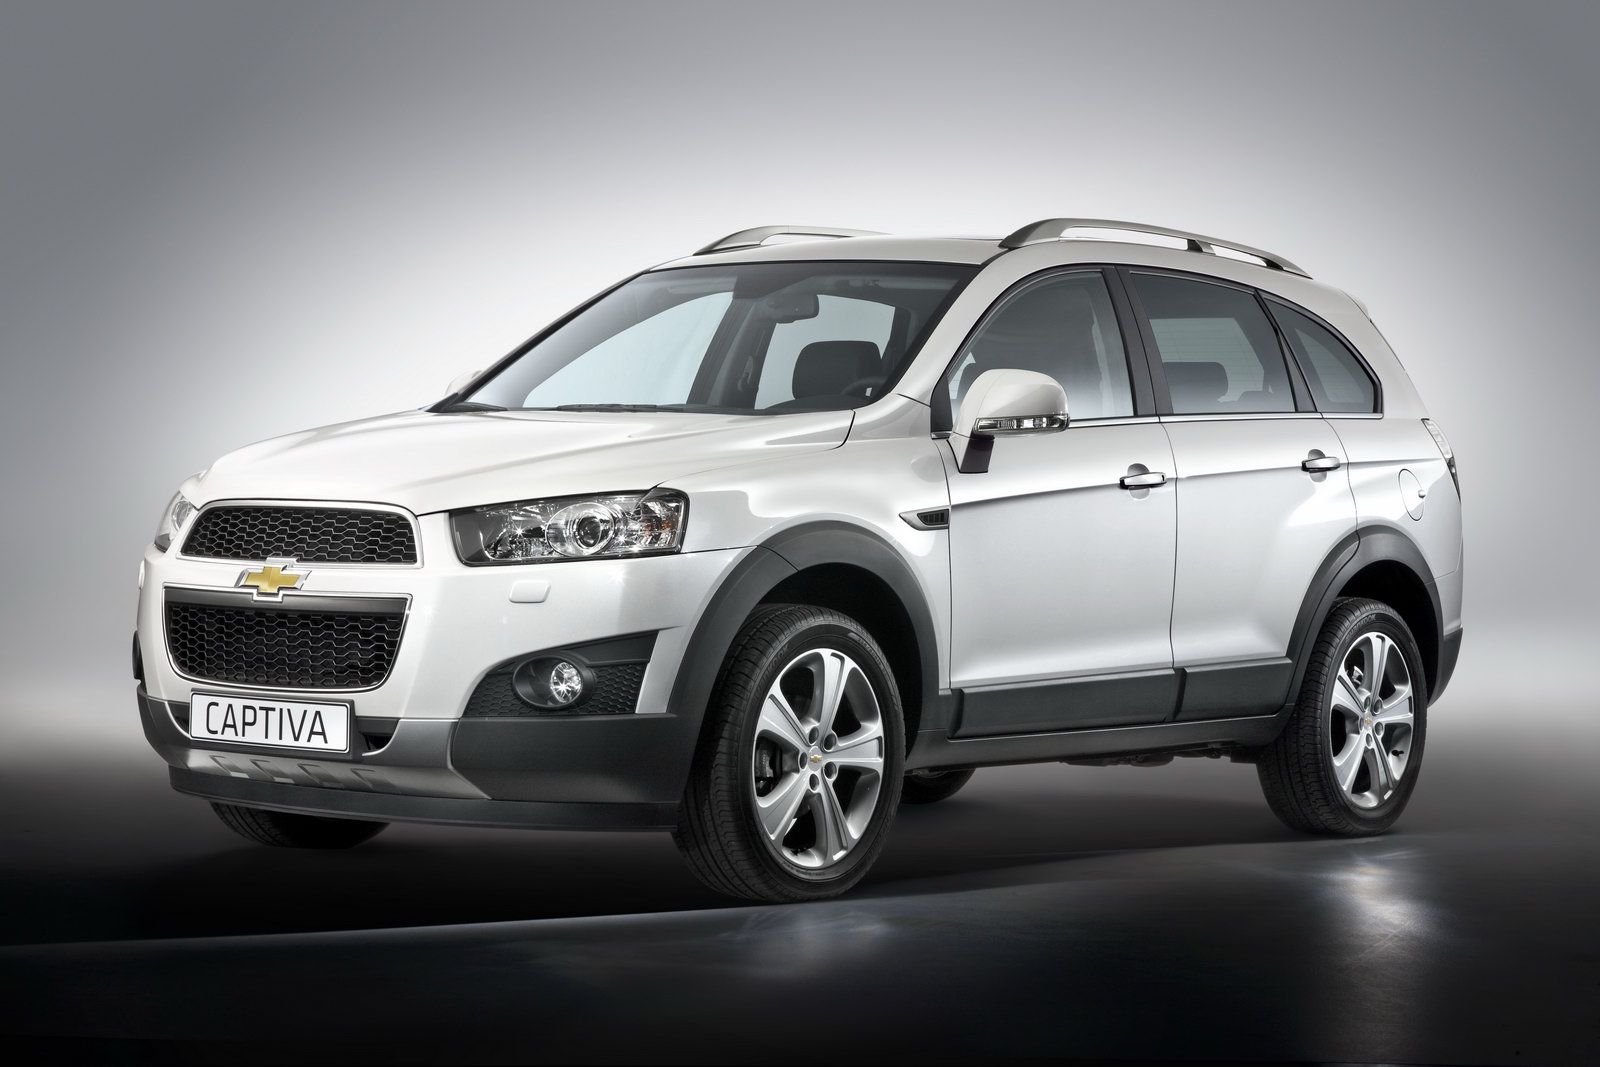 chevrolet captiva pictures #1